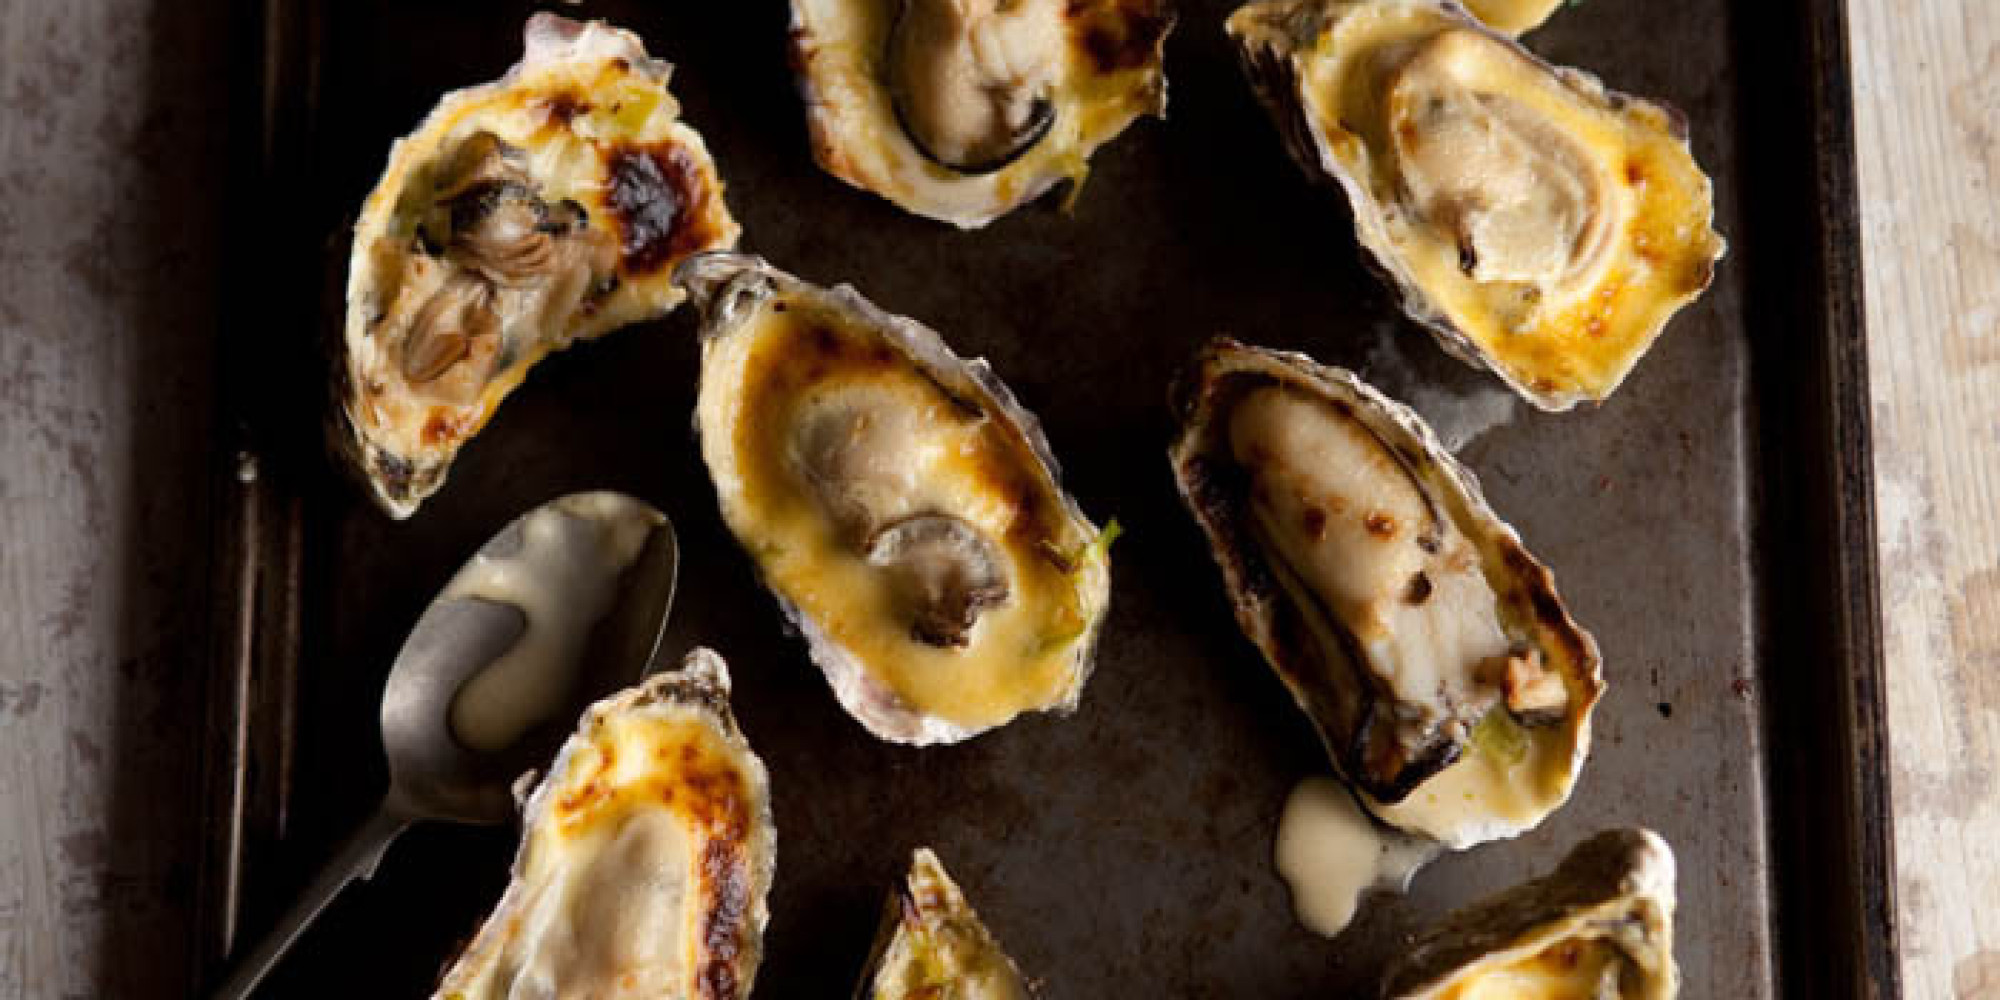 how to make raw oysters